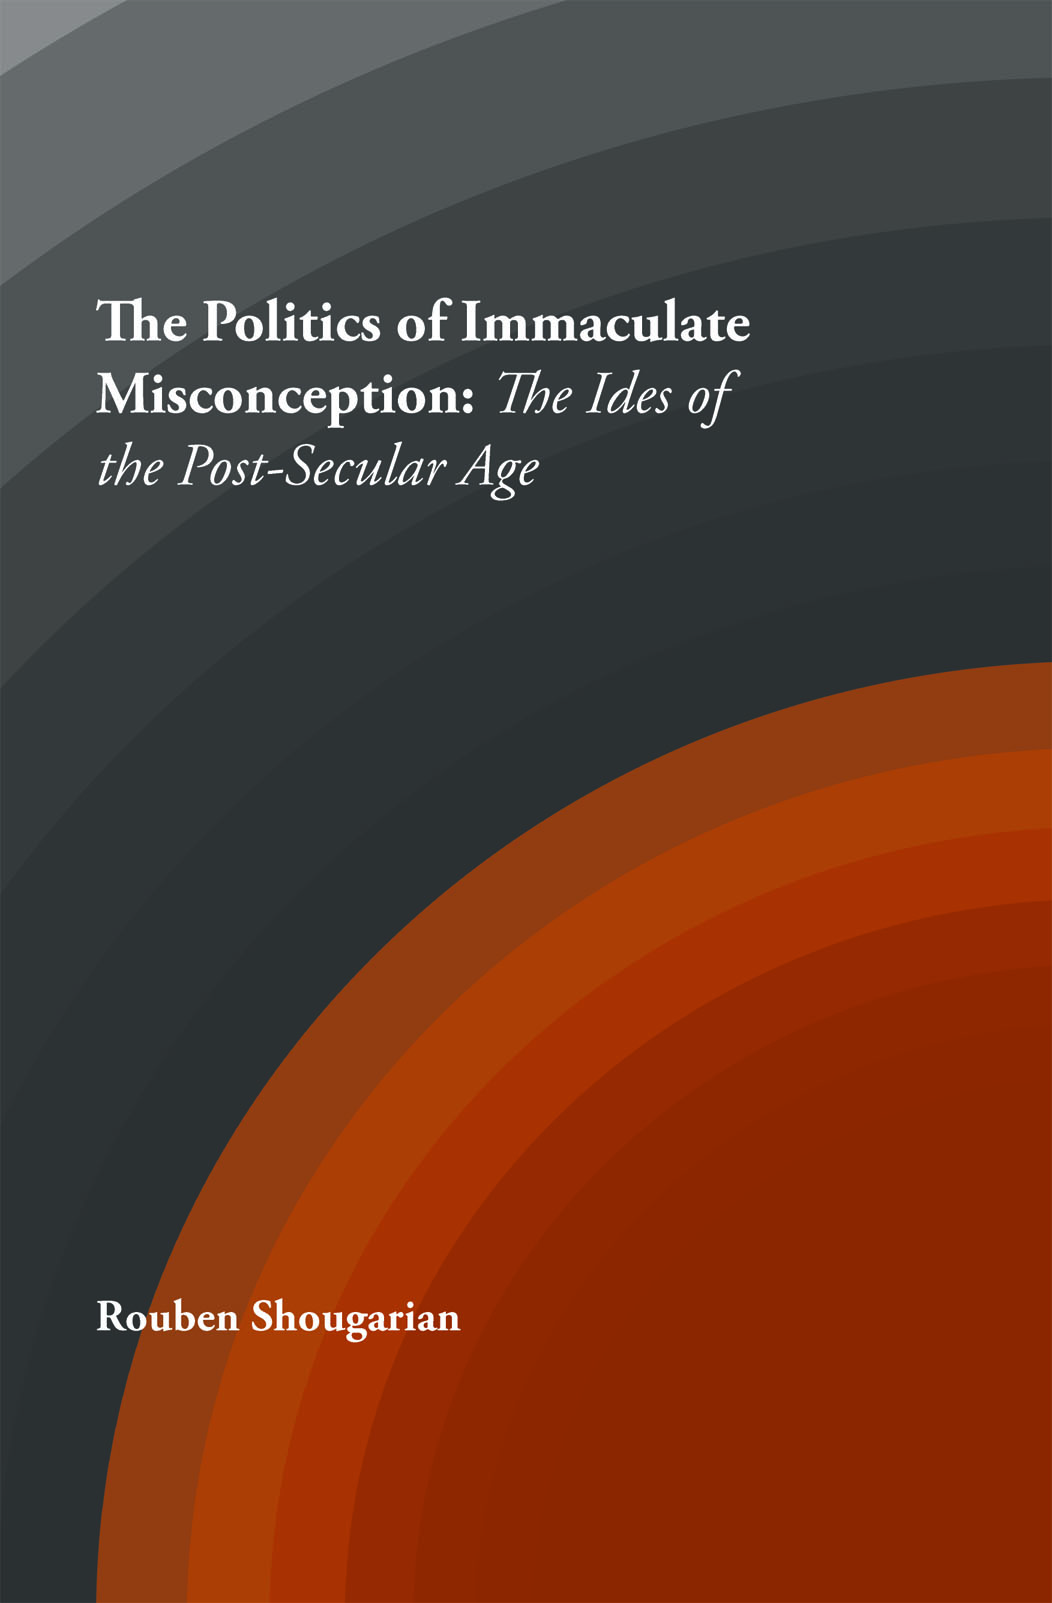 The Politics of Immaculate Misconception: The Ideas of the Post-Secular Age